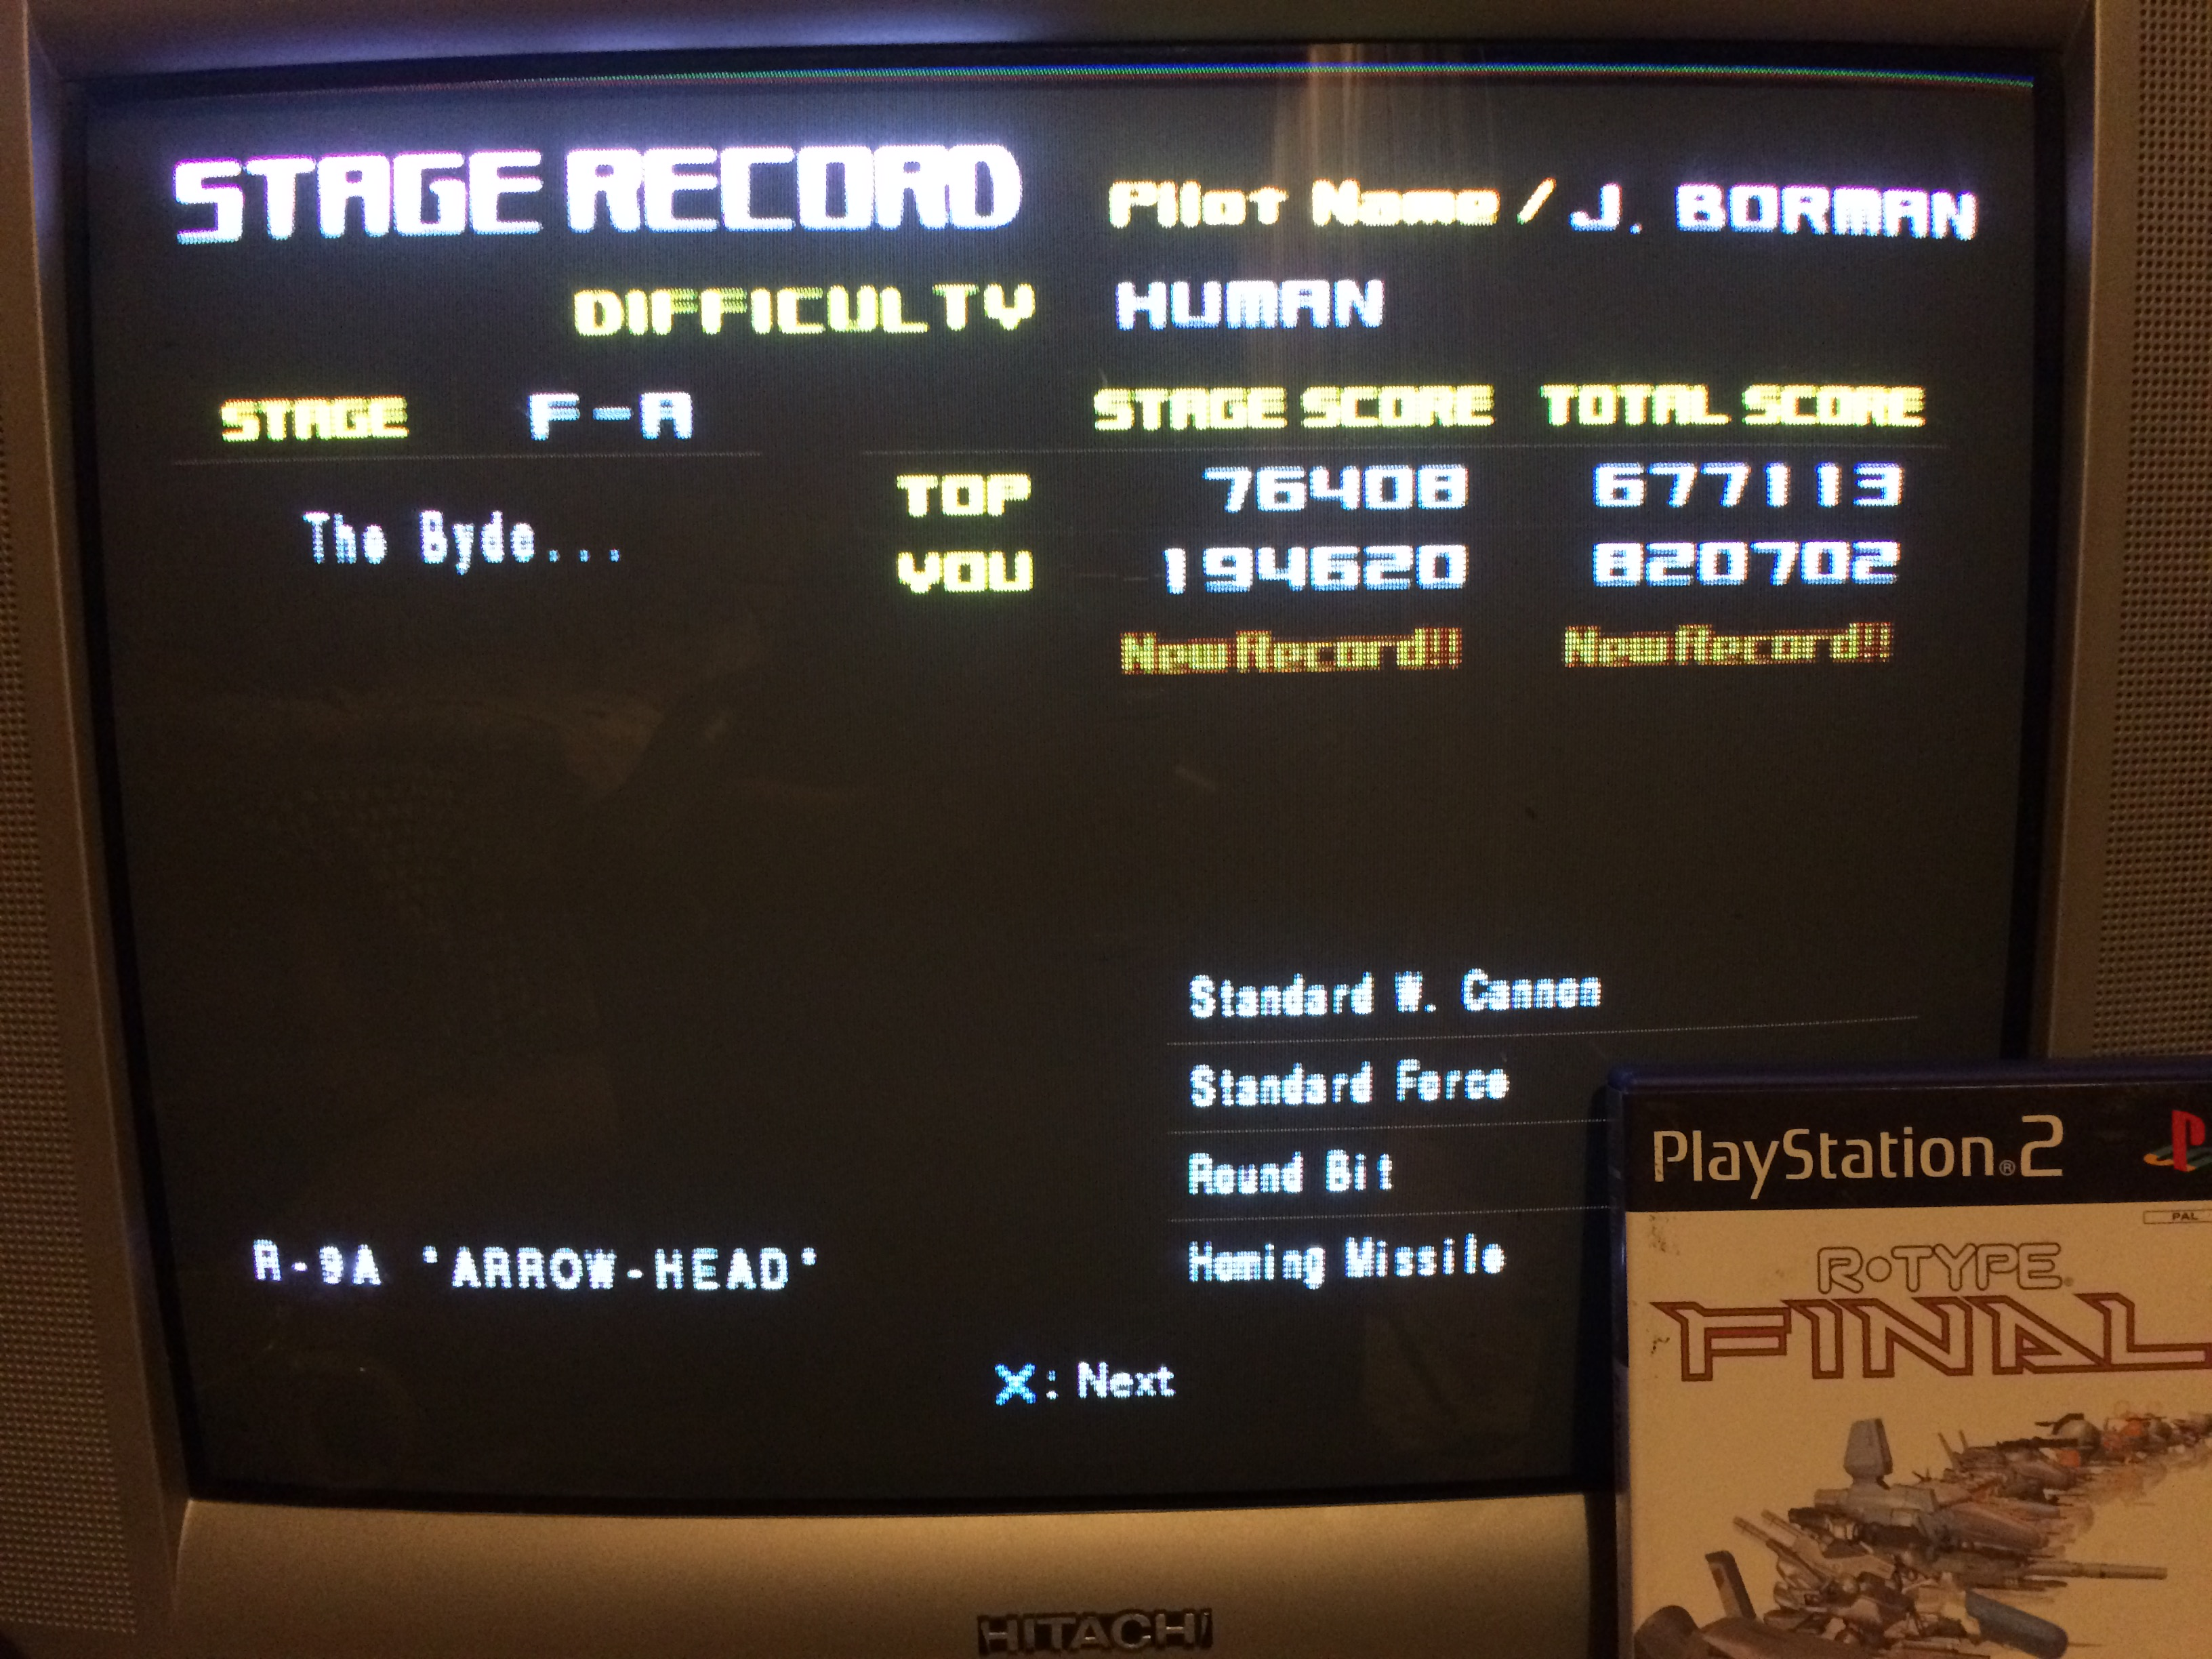 R-Type Final [Human] 820,702 points